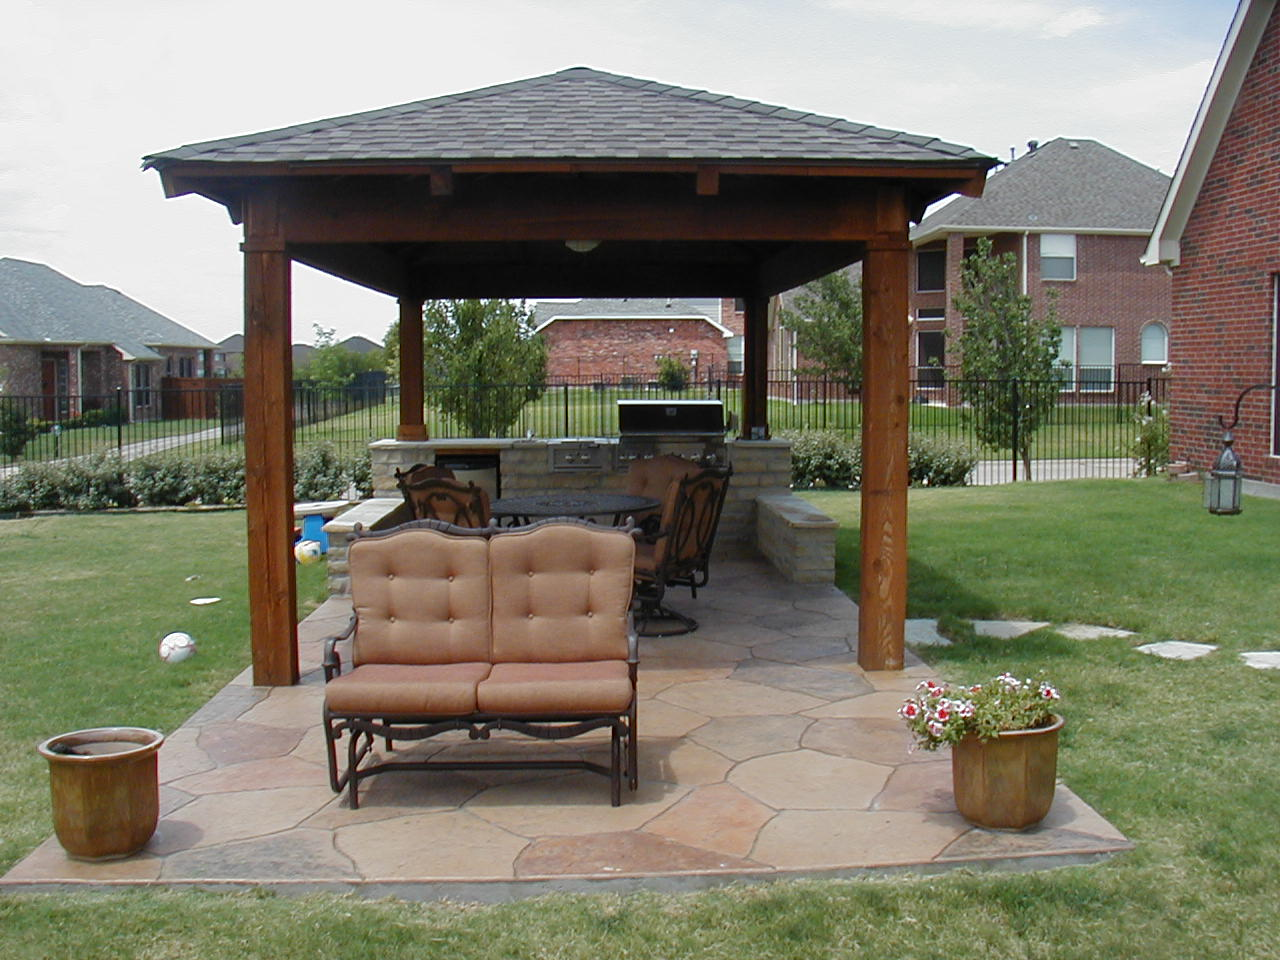 Outdoor Covered Patio Ideas - Design On Vine on Covered Patio Ideas id=64854